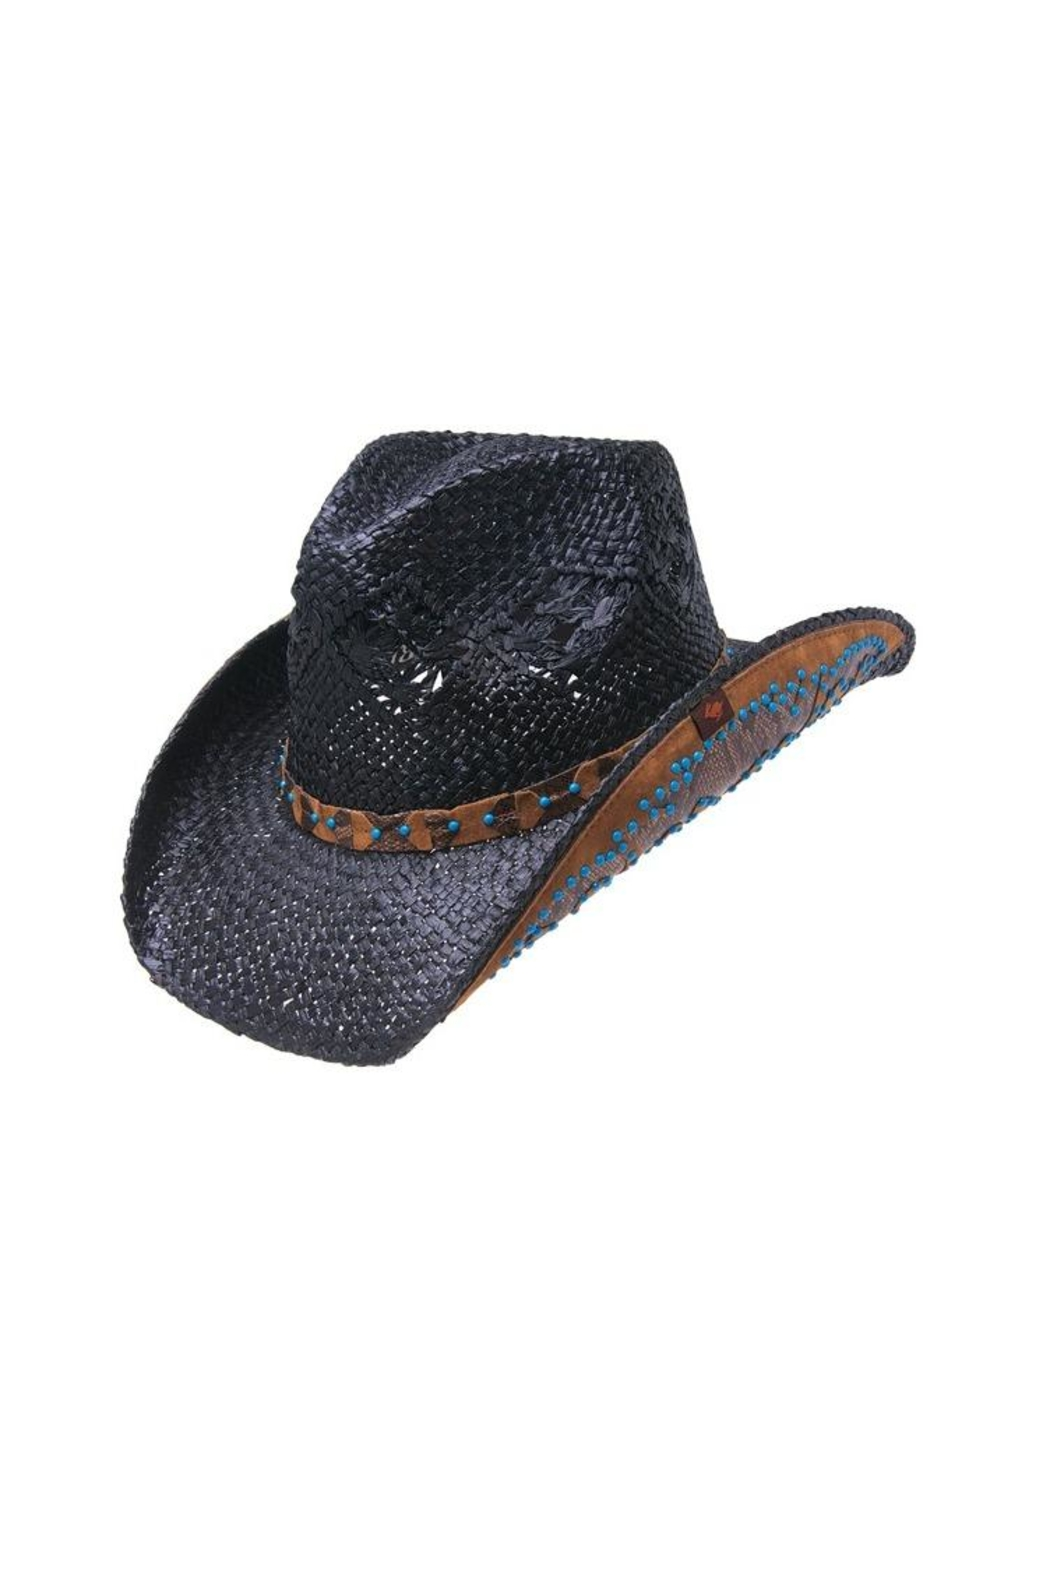 Peter Grimm Turquoise Studded Hat - Main Image